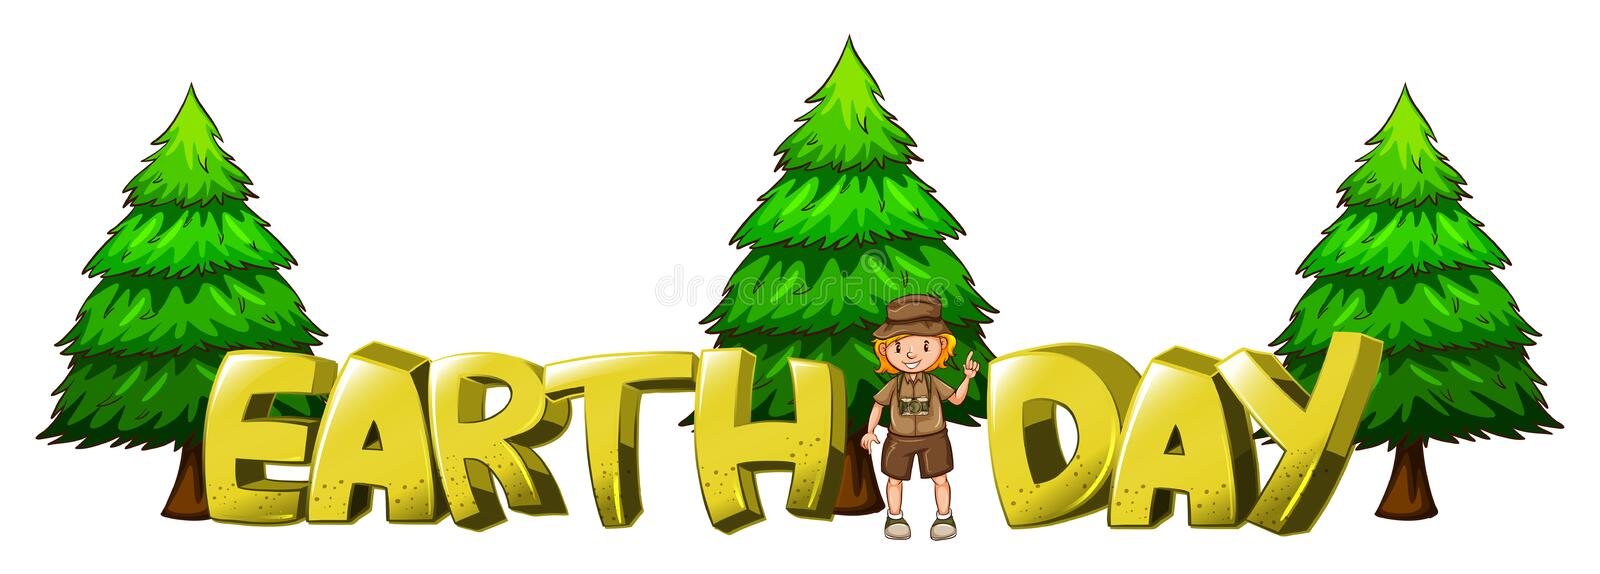 Font design for word earth day stock illustration